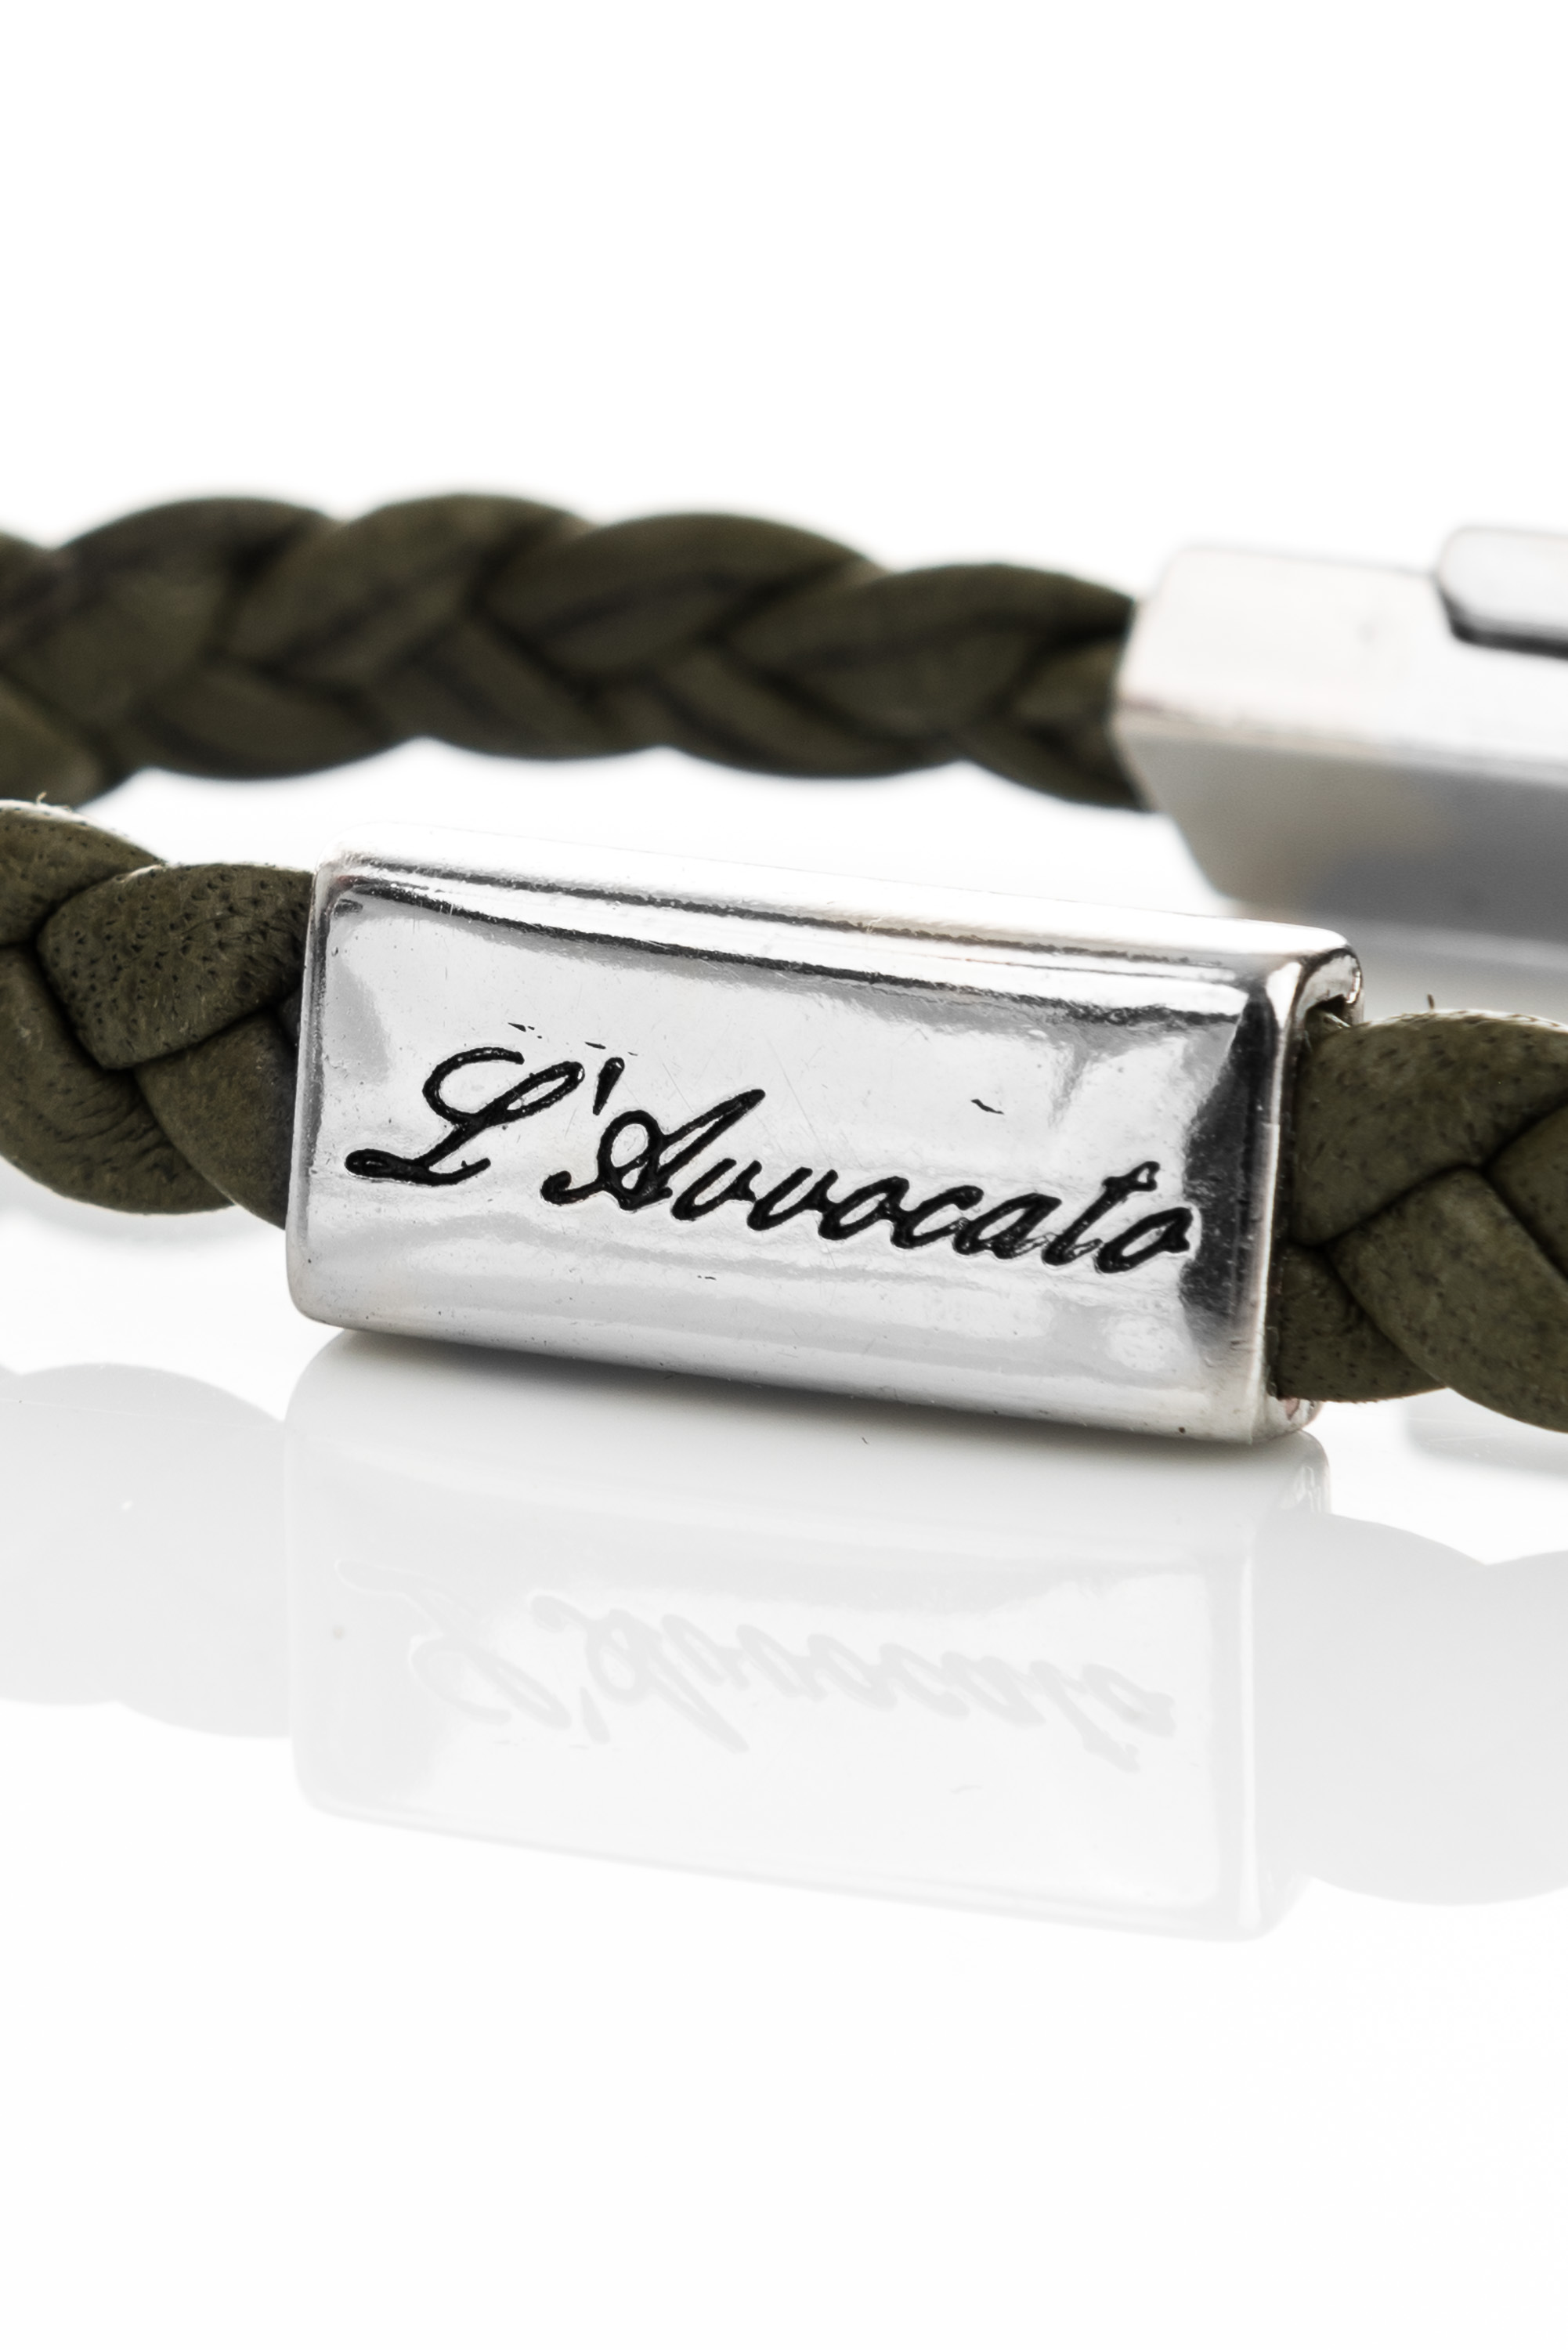 "Vowen green leather bracelet ""Eddy"" – steel plate branded with L\\'Avvocato detail"